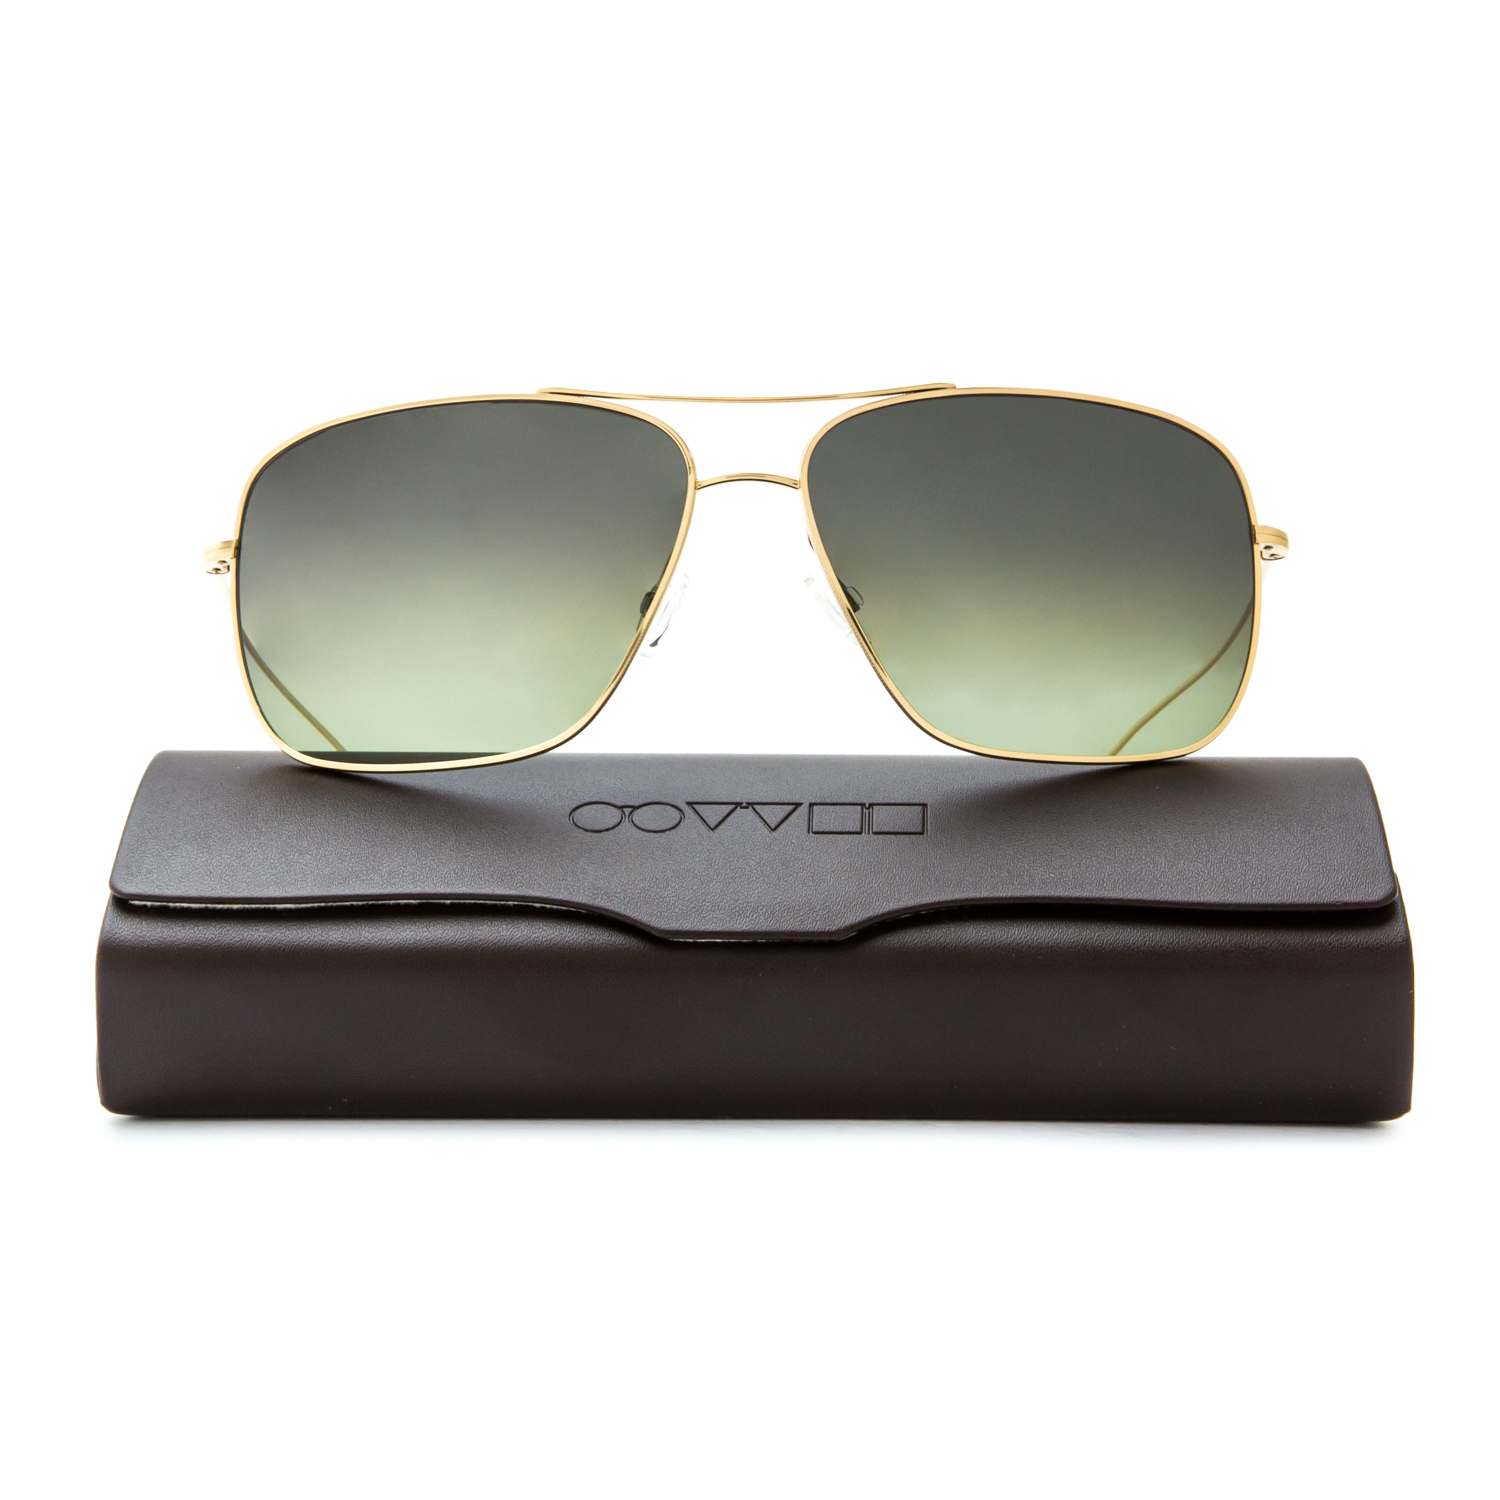 1cd0867779f8 Oliver Peoples Sunglasses Ebay Uk - Bitterroot Public Library